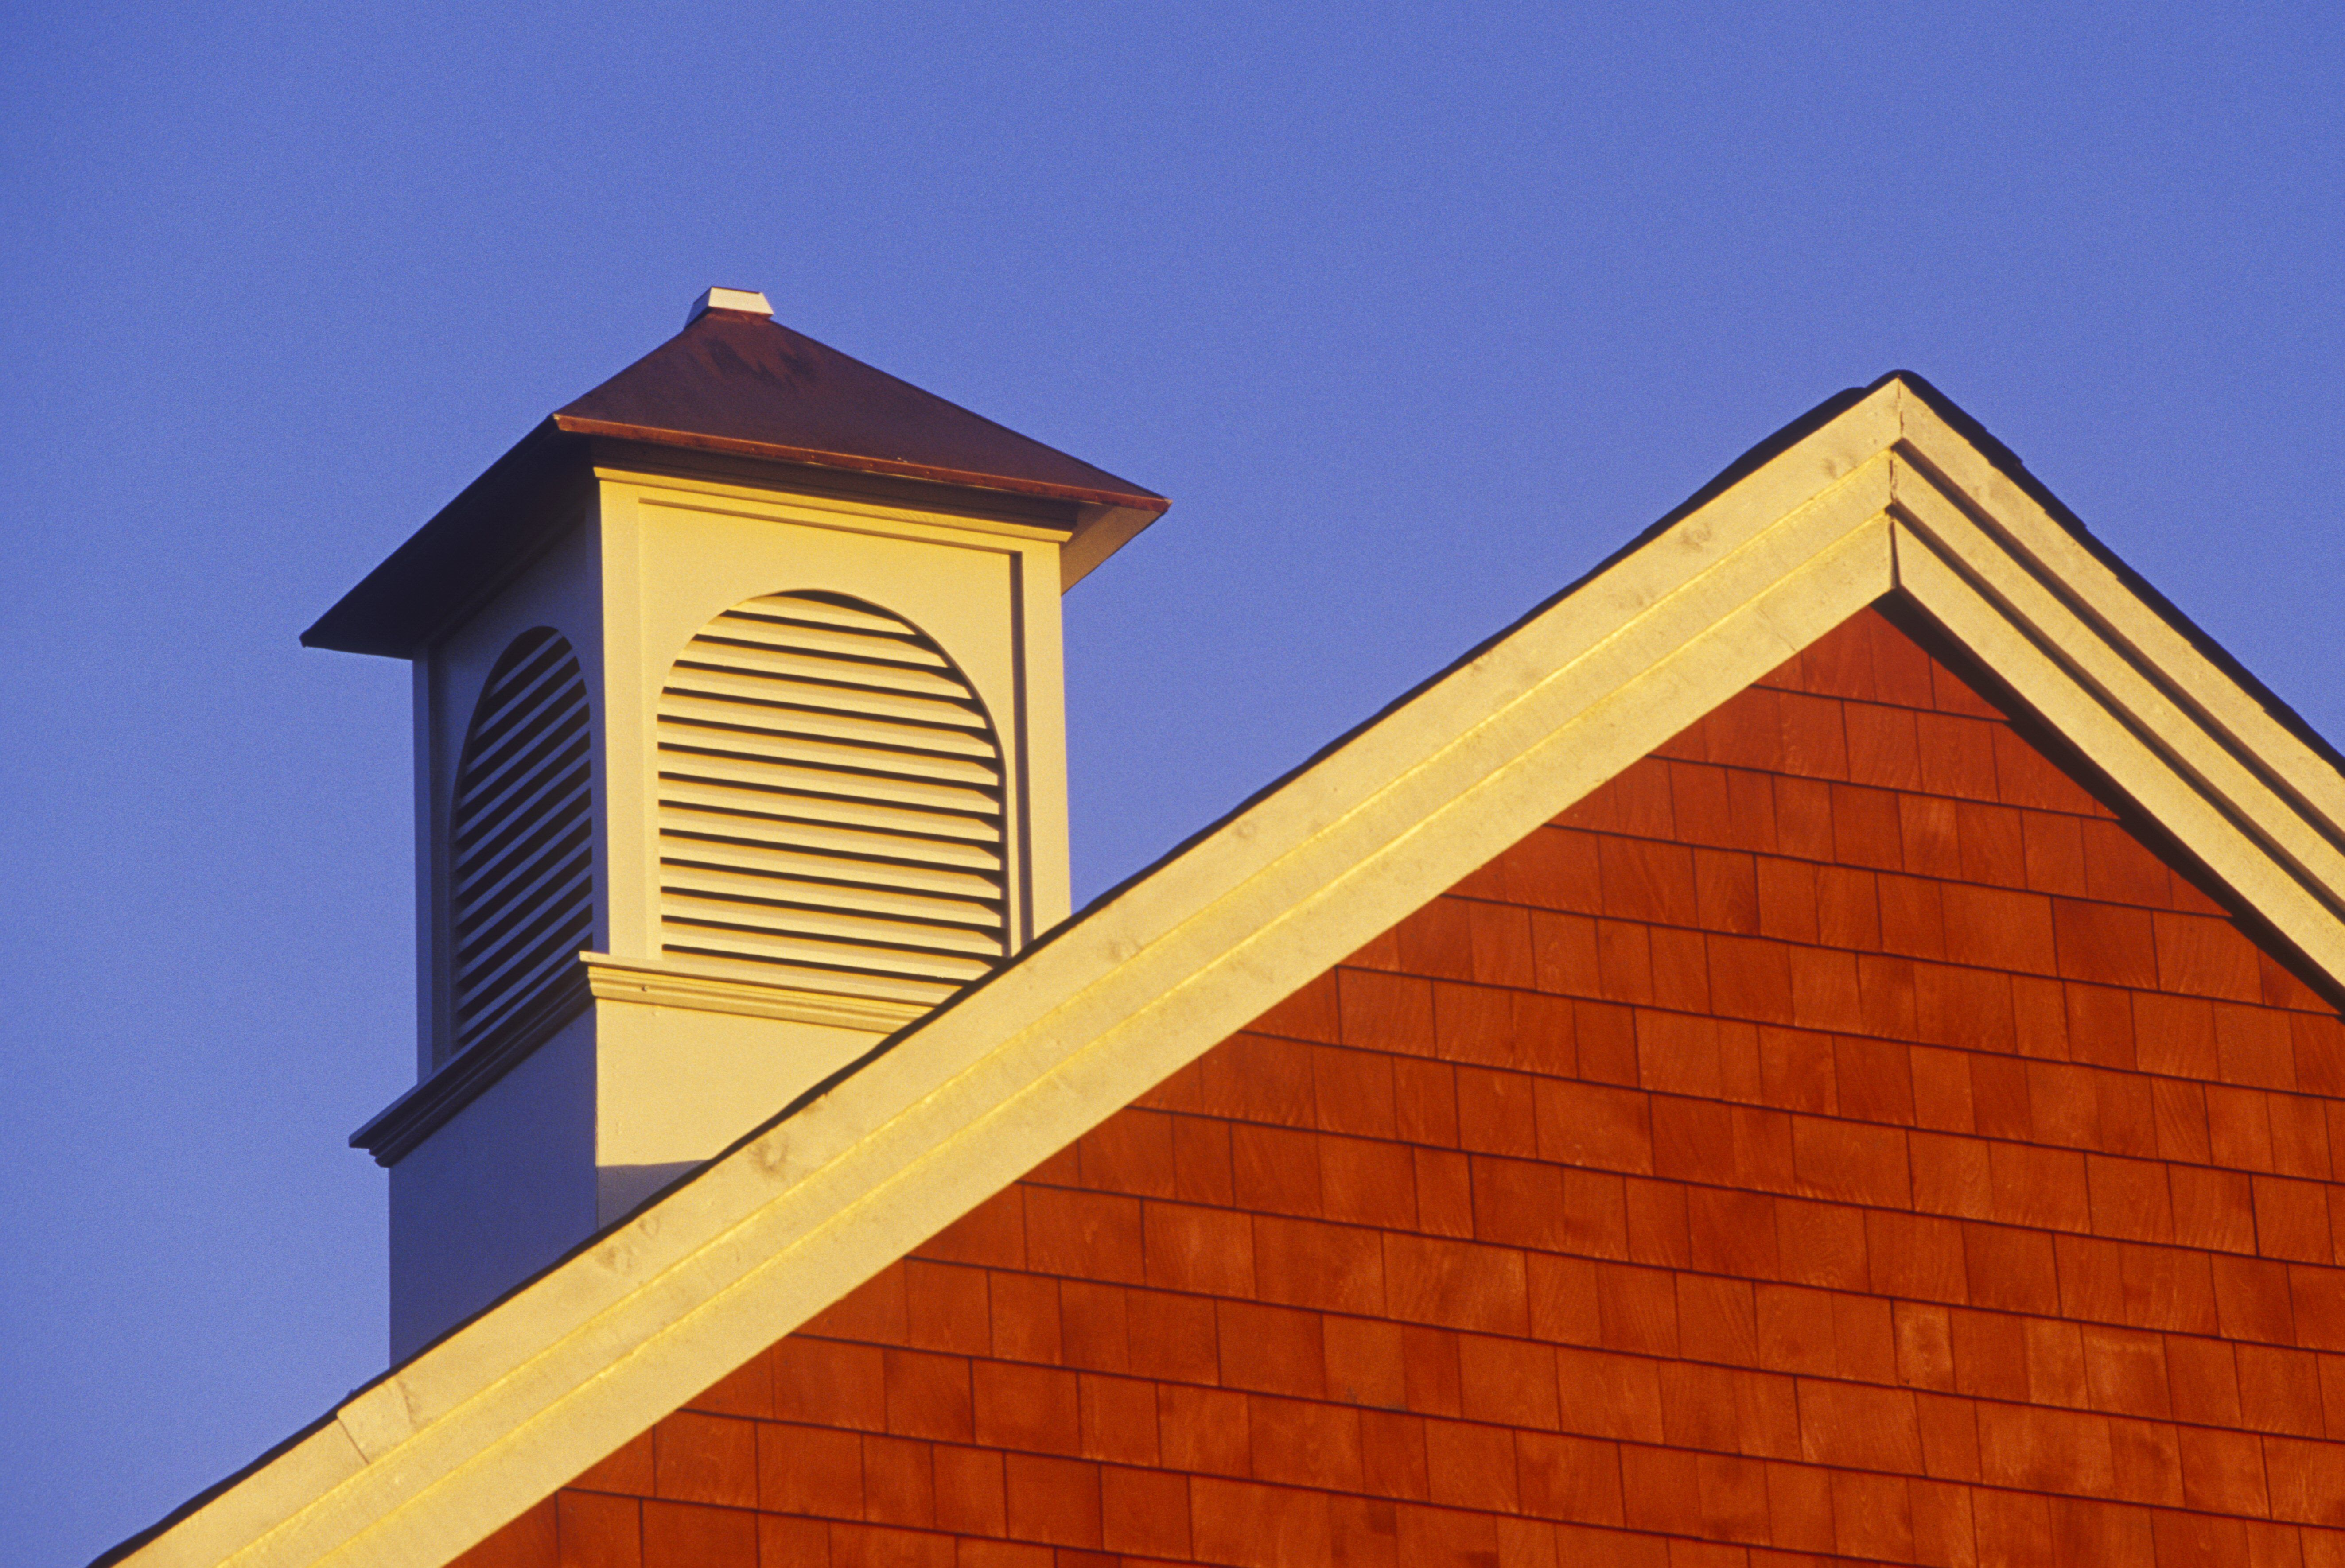 What is a Cupola? Definition and How Cupolas Are Used